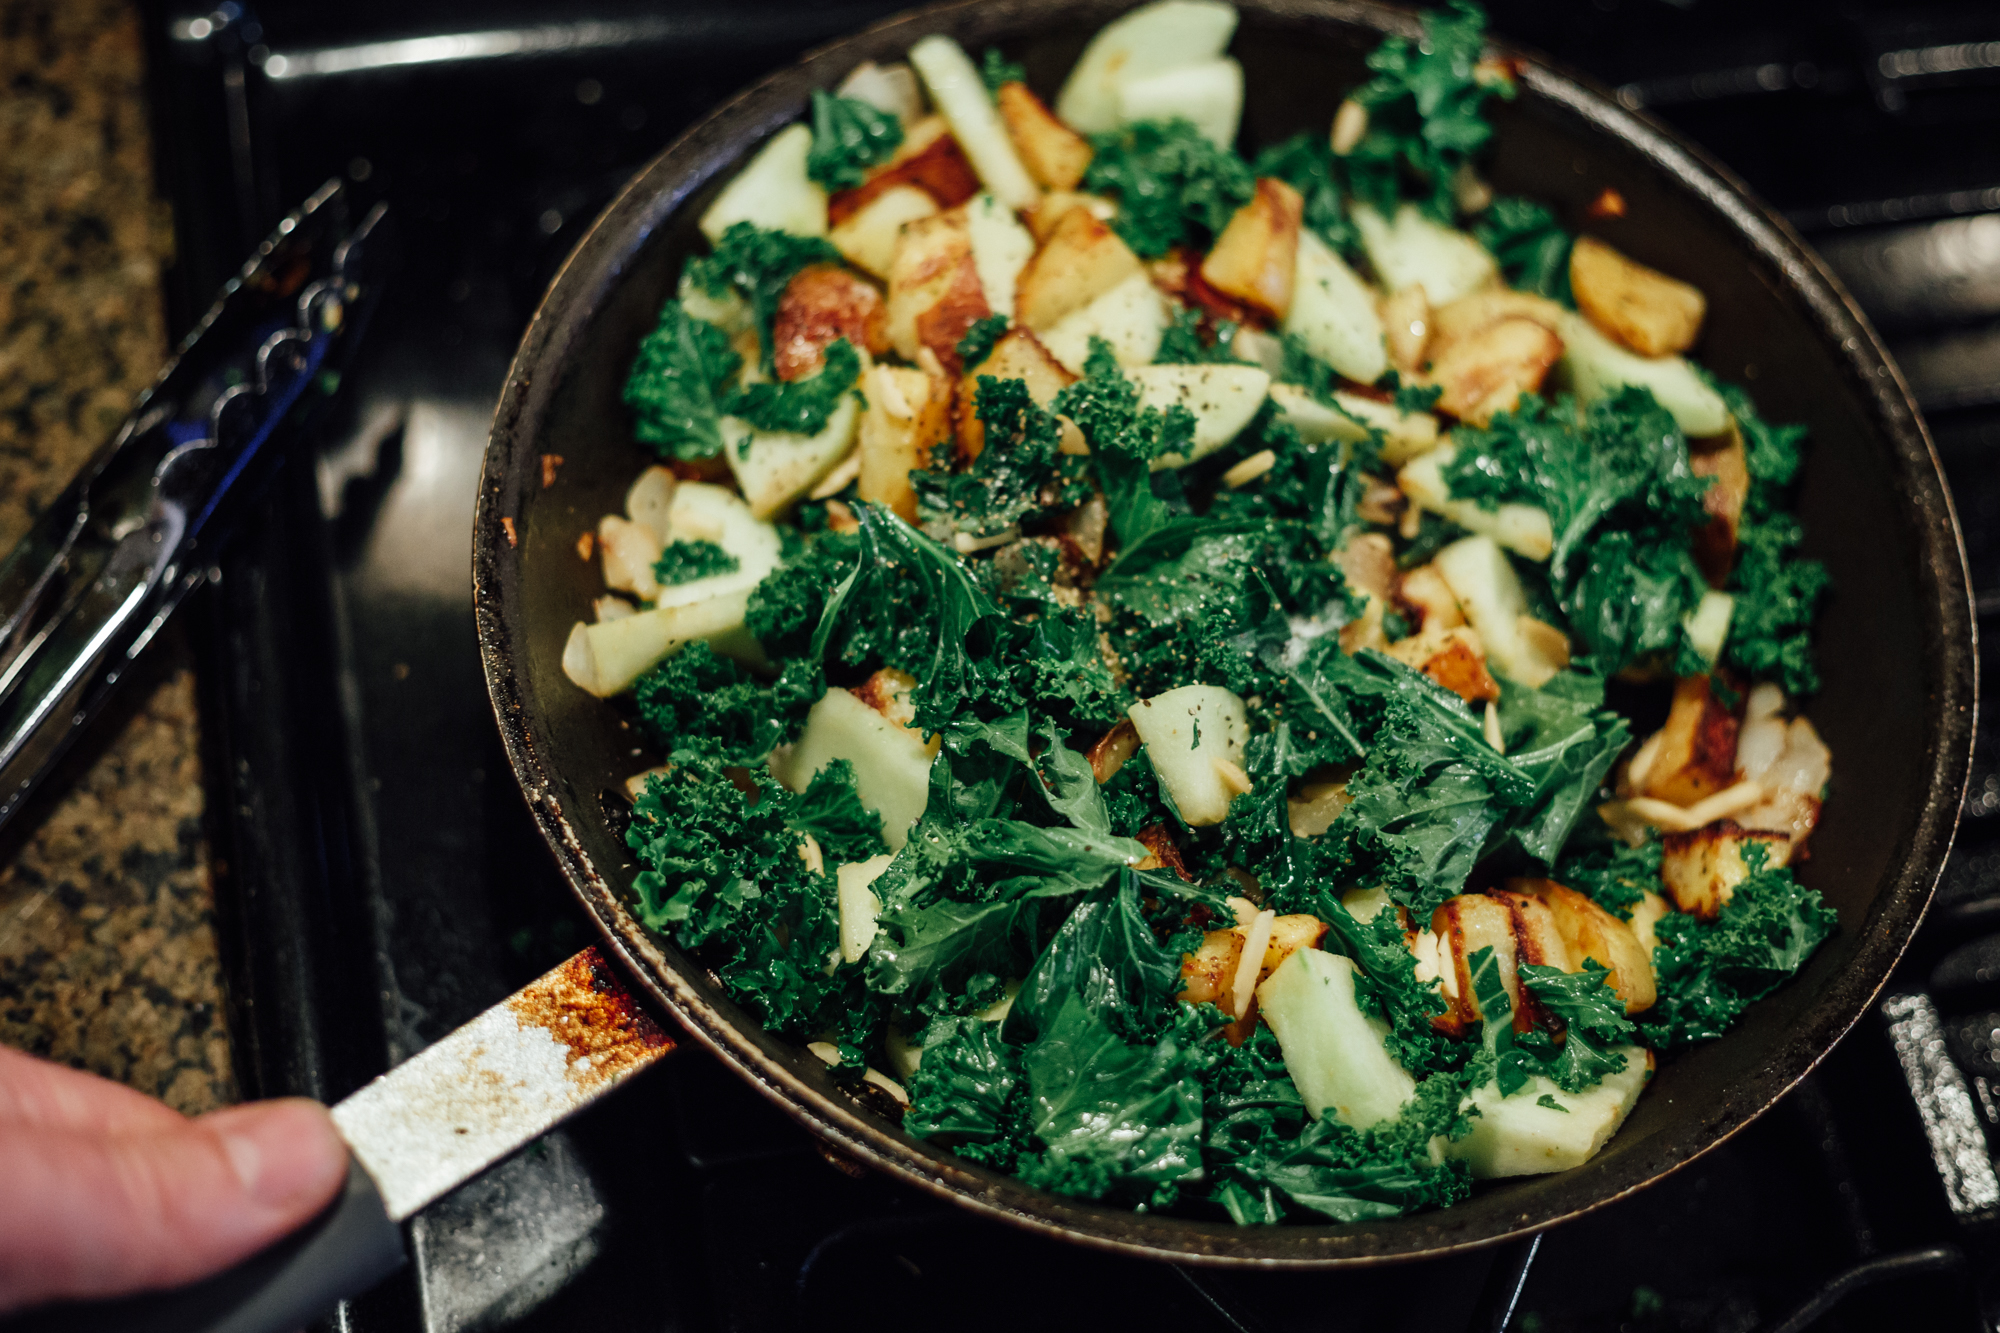 It's all coming together now!I love the combination of colors, textures and smells in this dish. Here I have potatoes, apples, onions, almonds and kale just about to be placed onto a dish, and will top them with a pice of seared chicken.